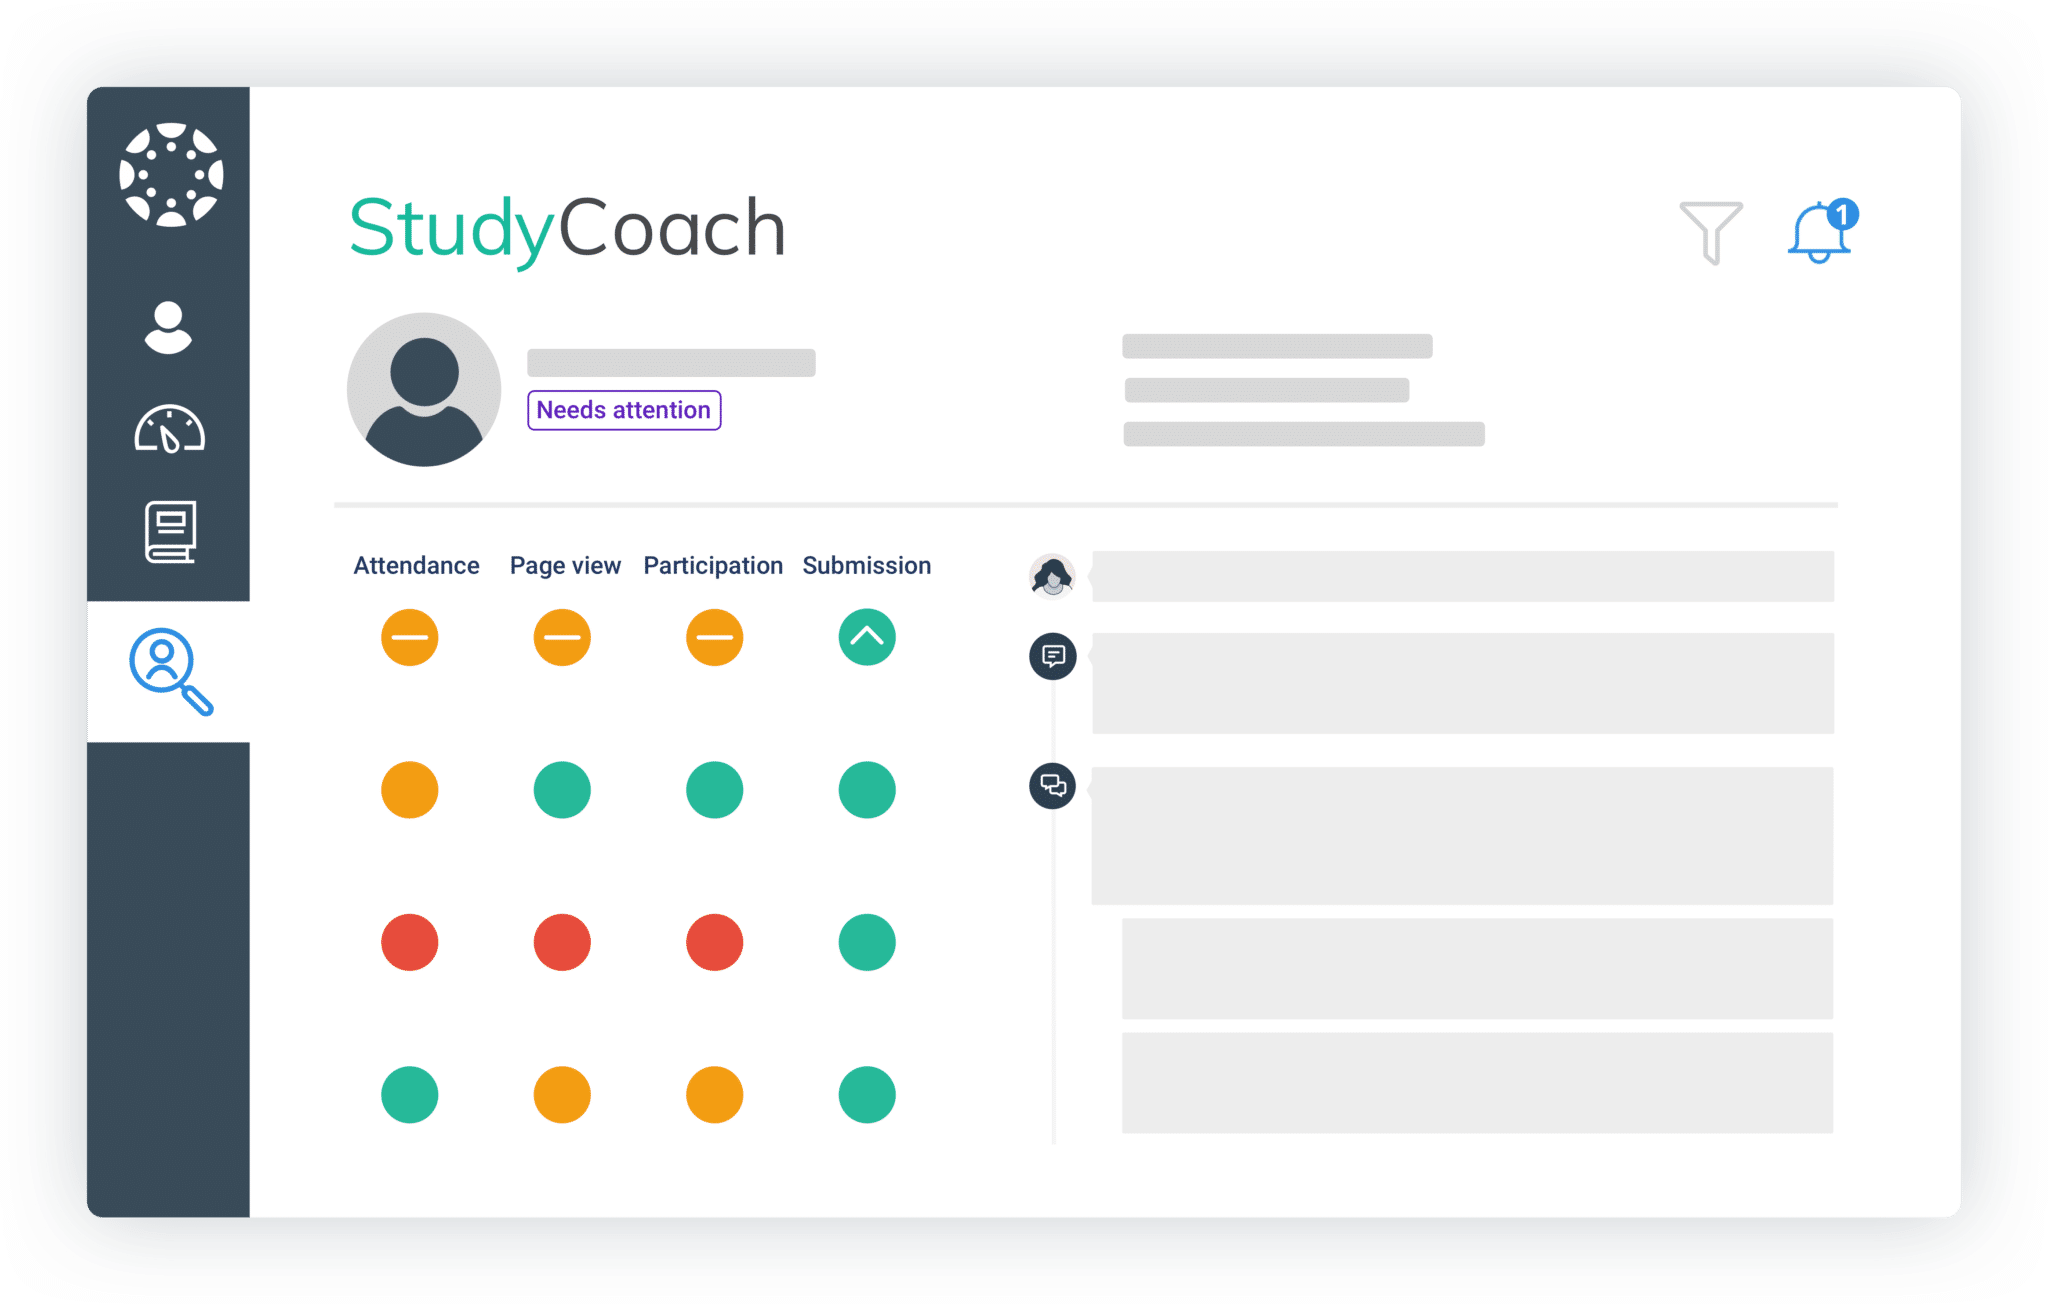 3. Coach on student view